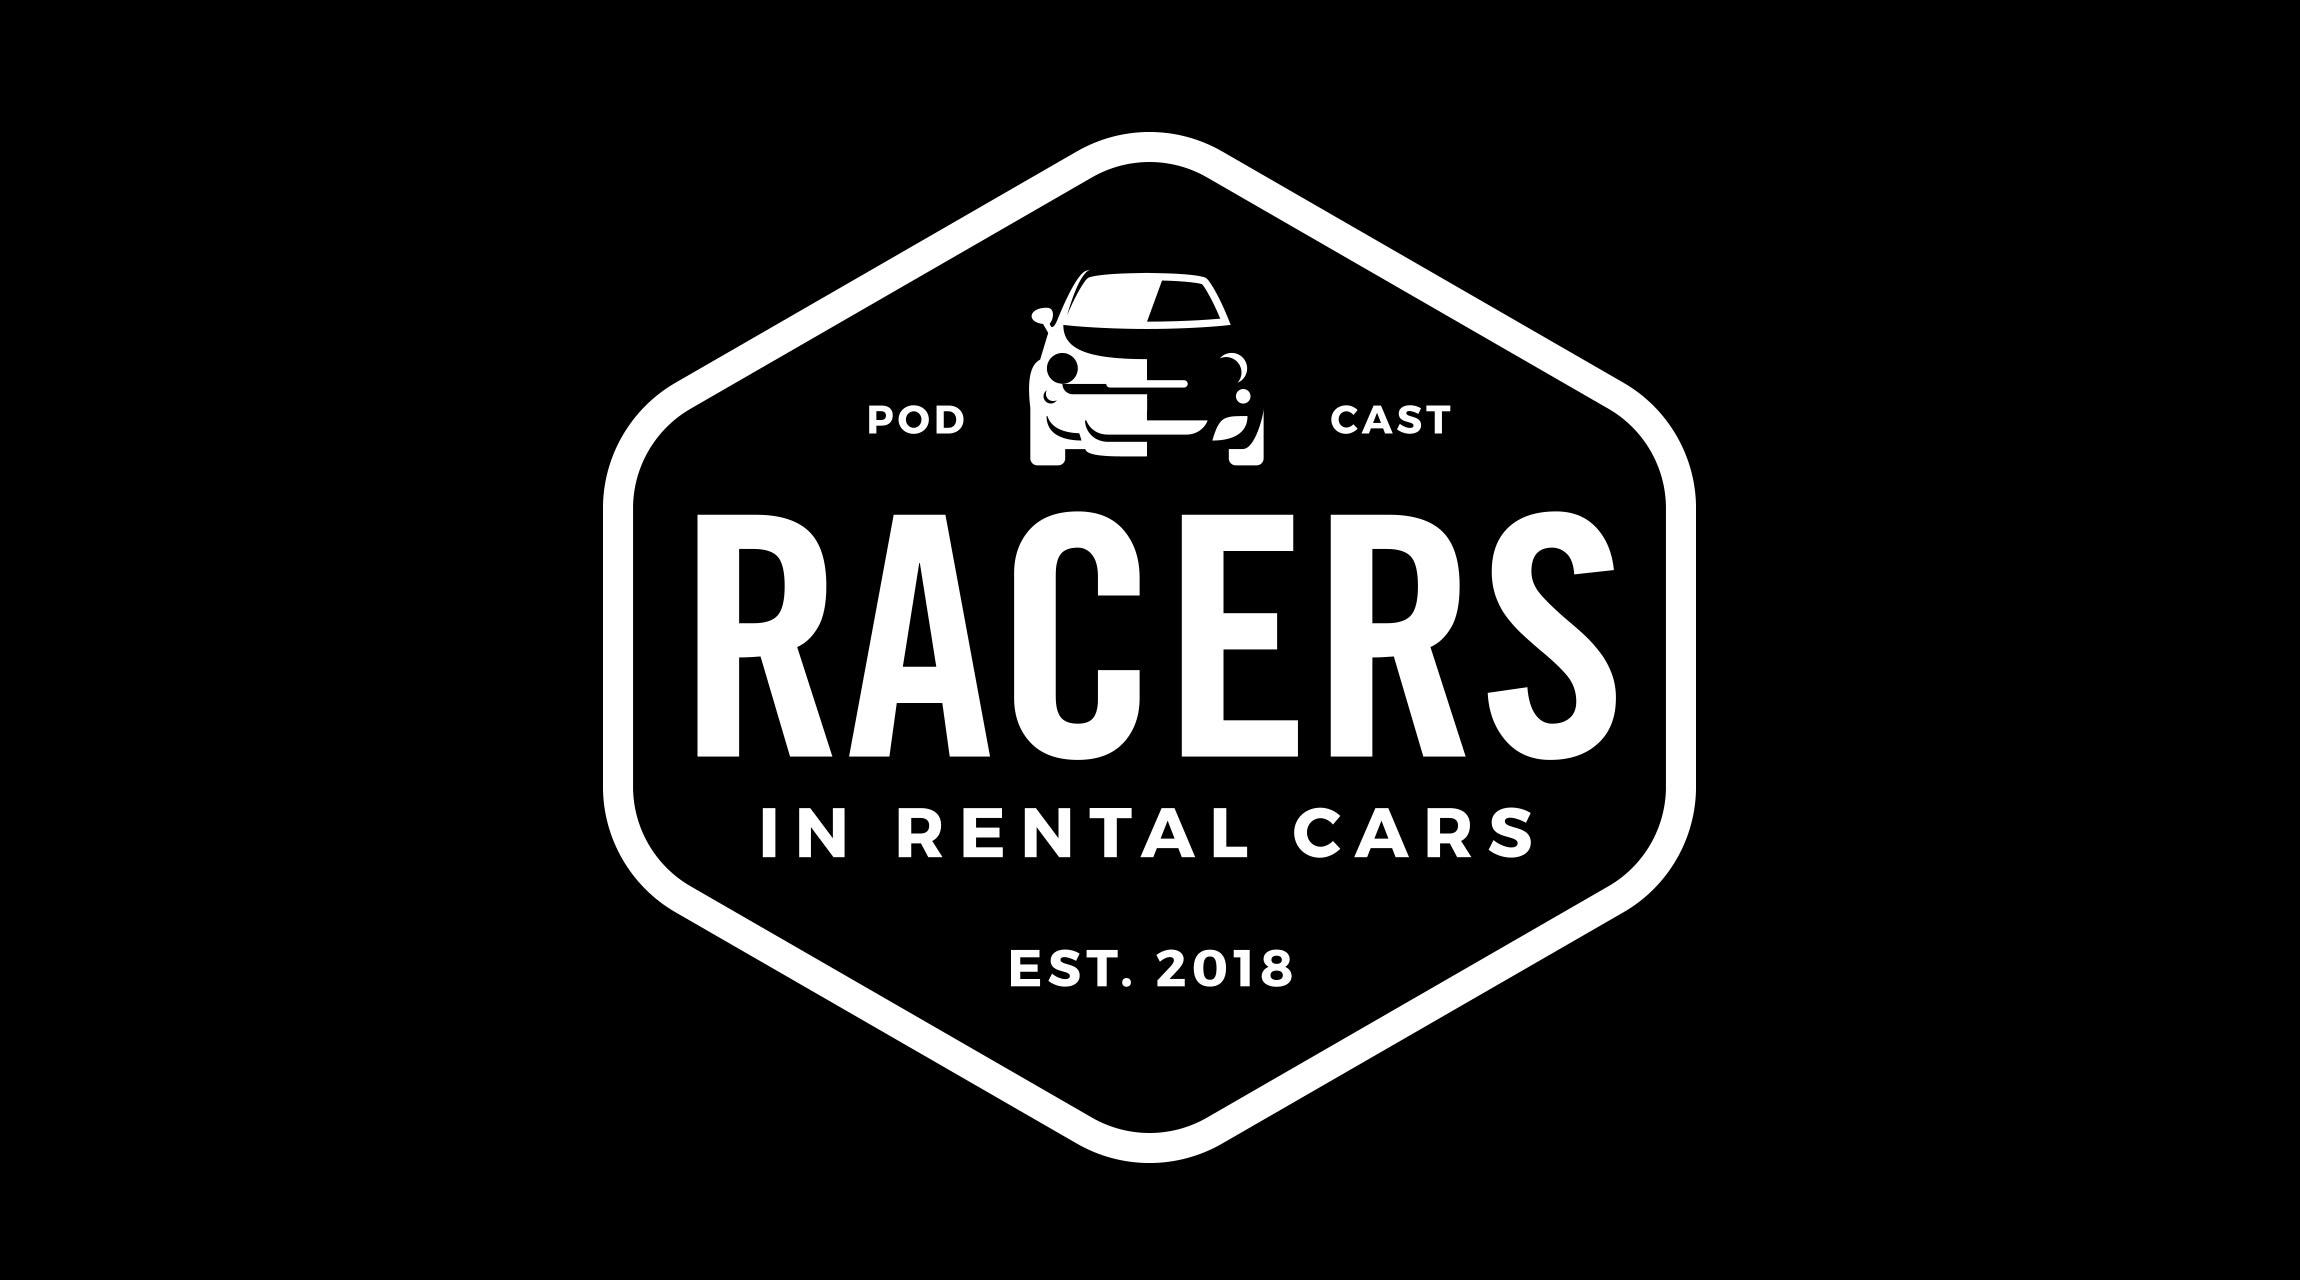 Racers in Rental Cars